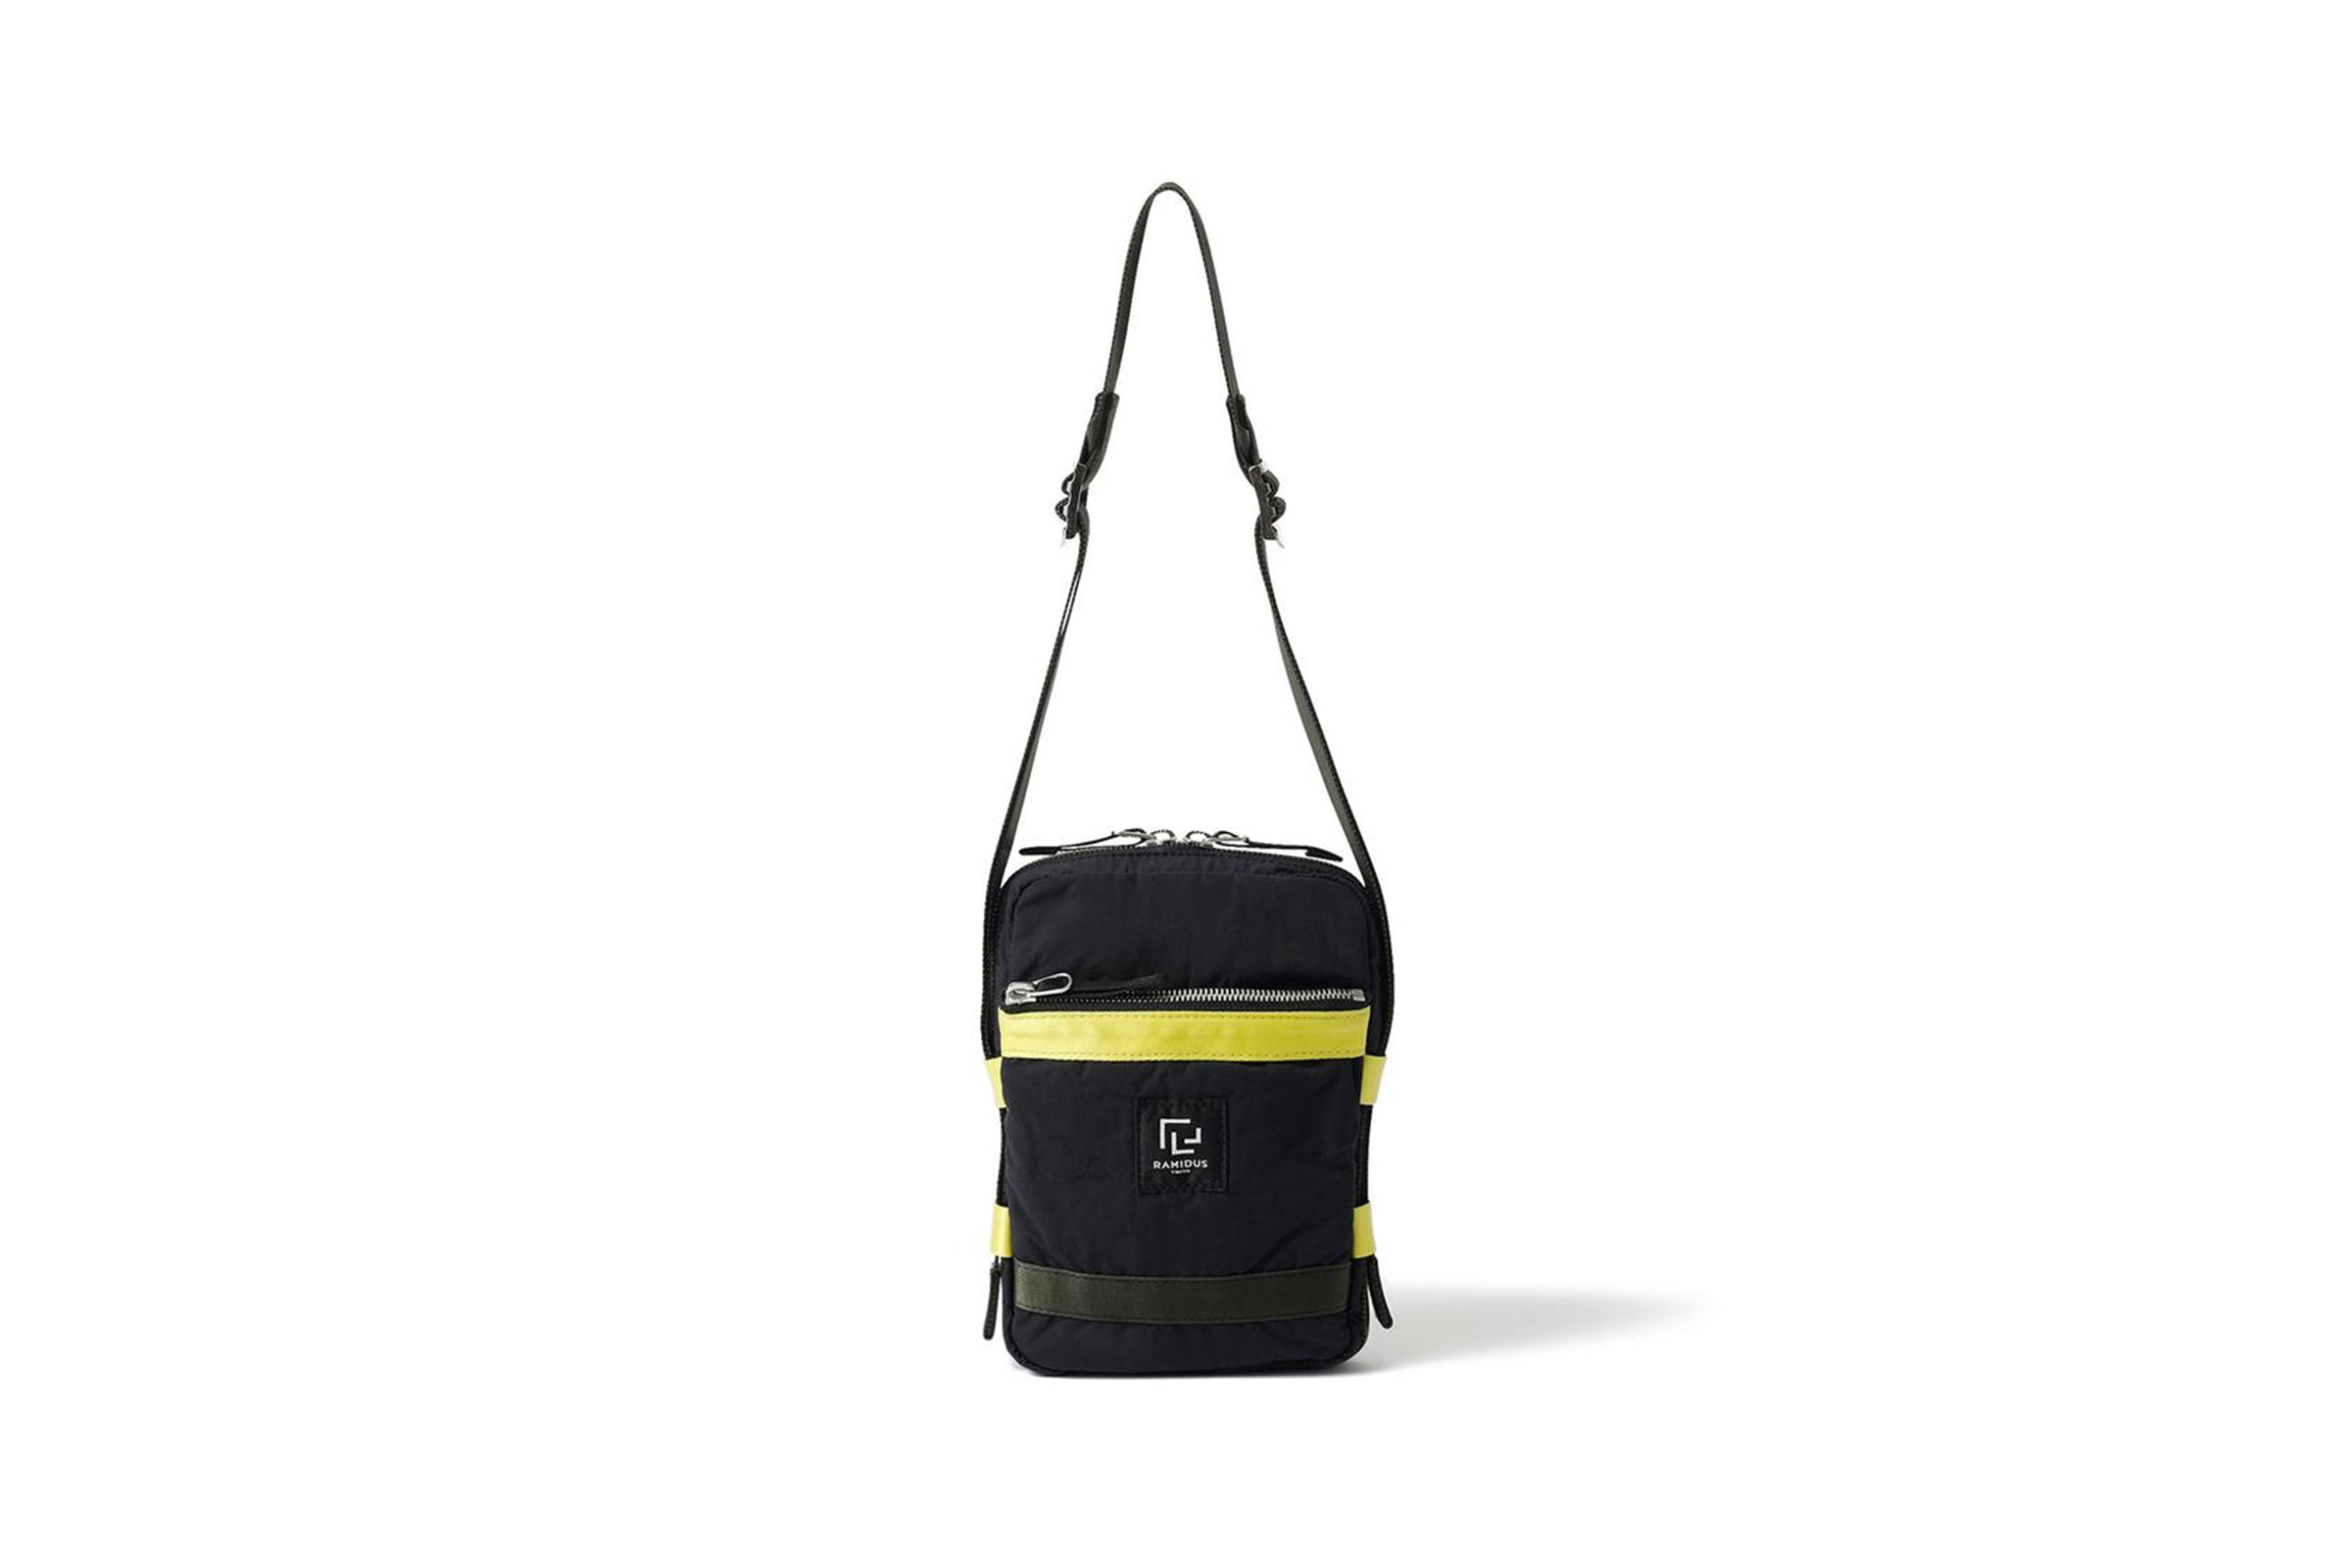 Ramidus Orbit Shoulder Pouch